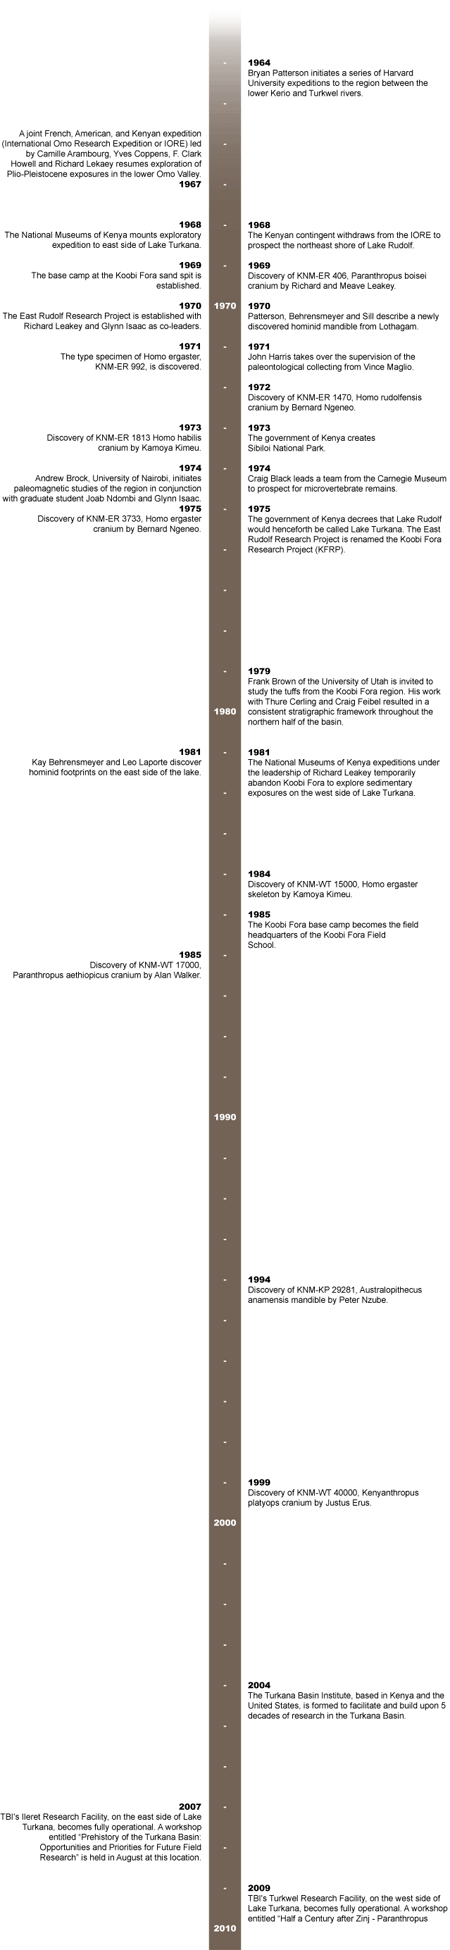 Timeline of Research